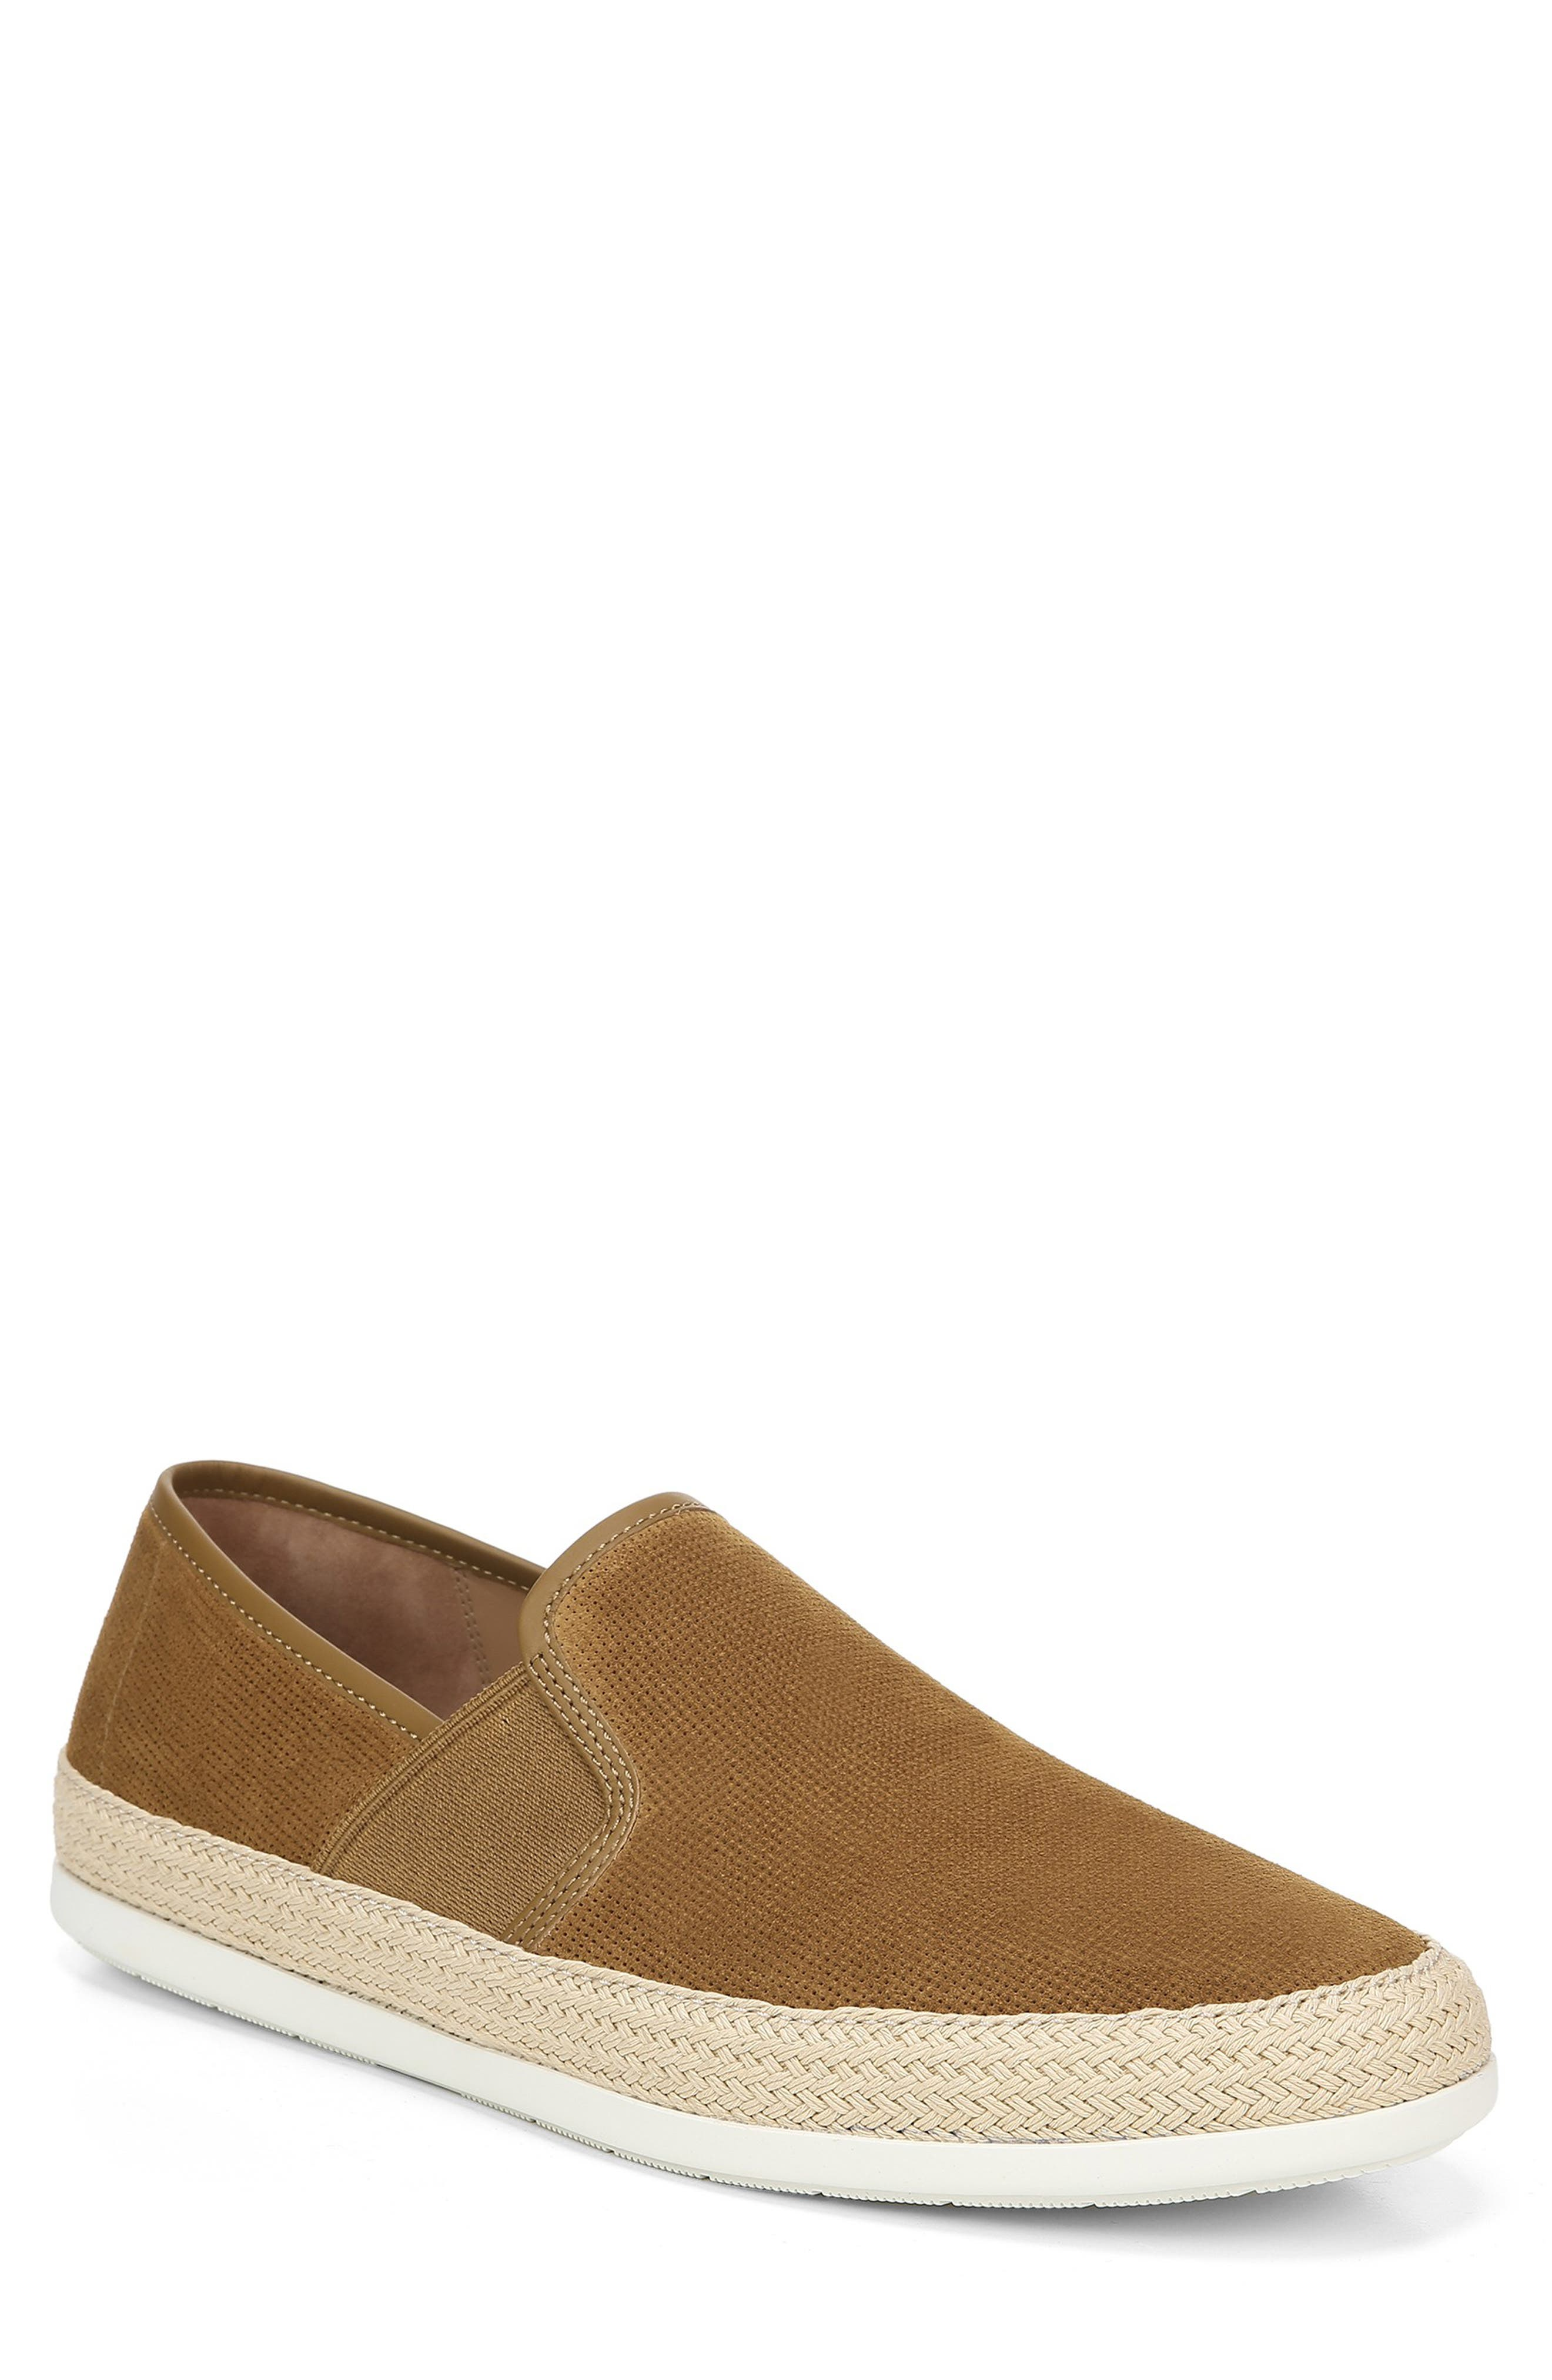 Chad Espadrille Slip-On Sneaker,                         Main,                         color, WHEAT